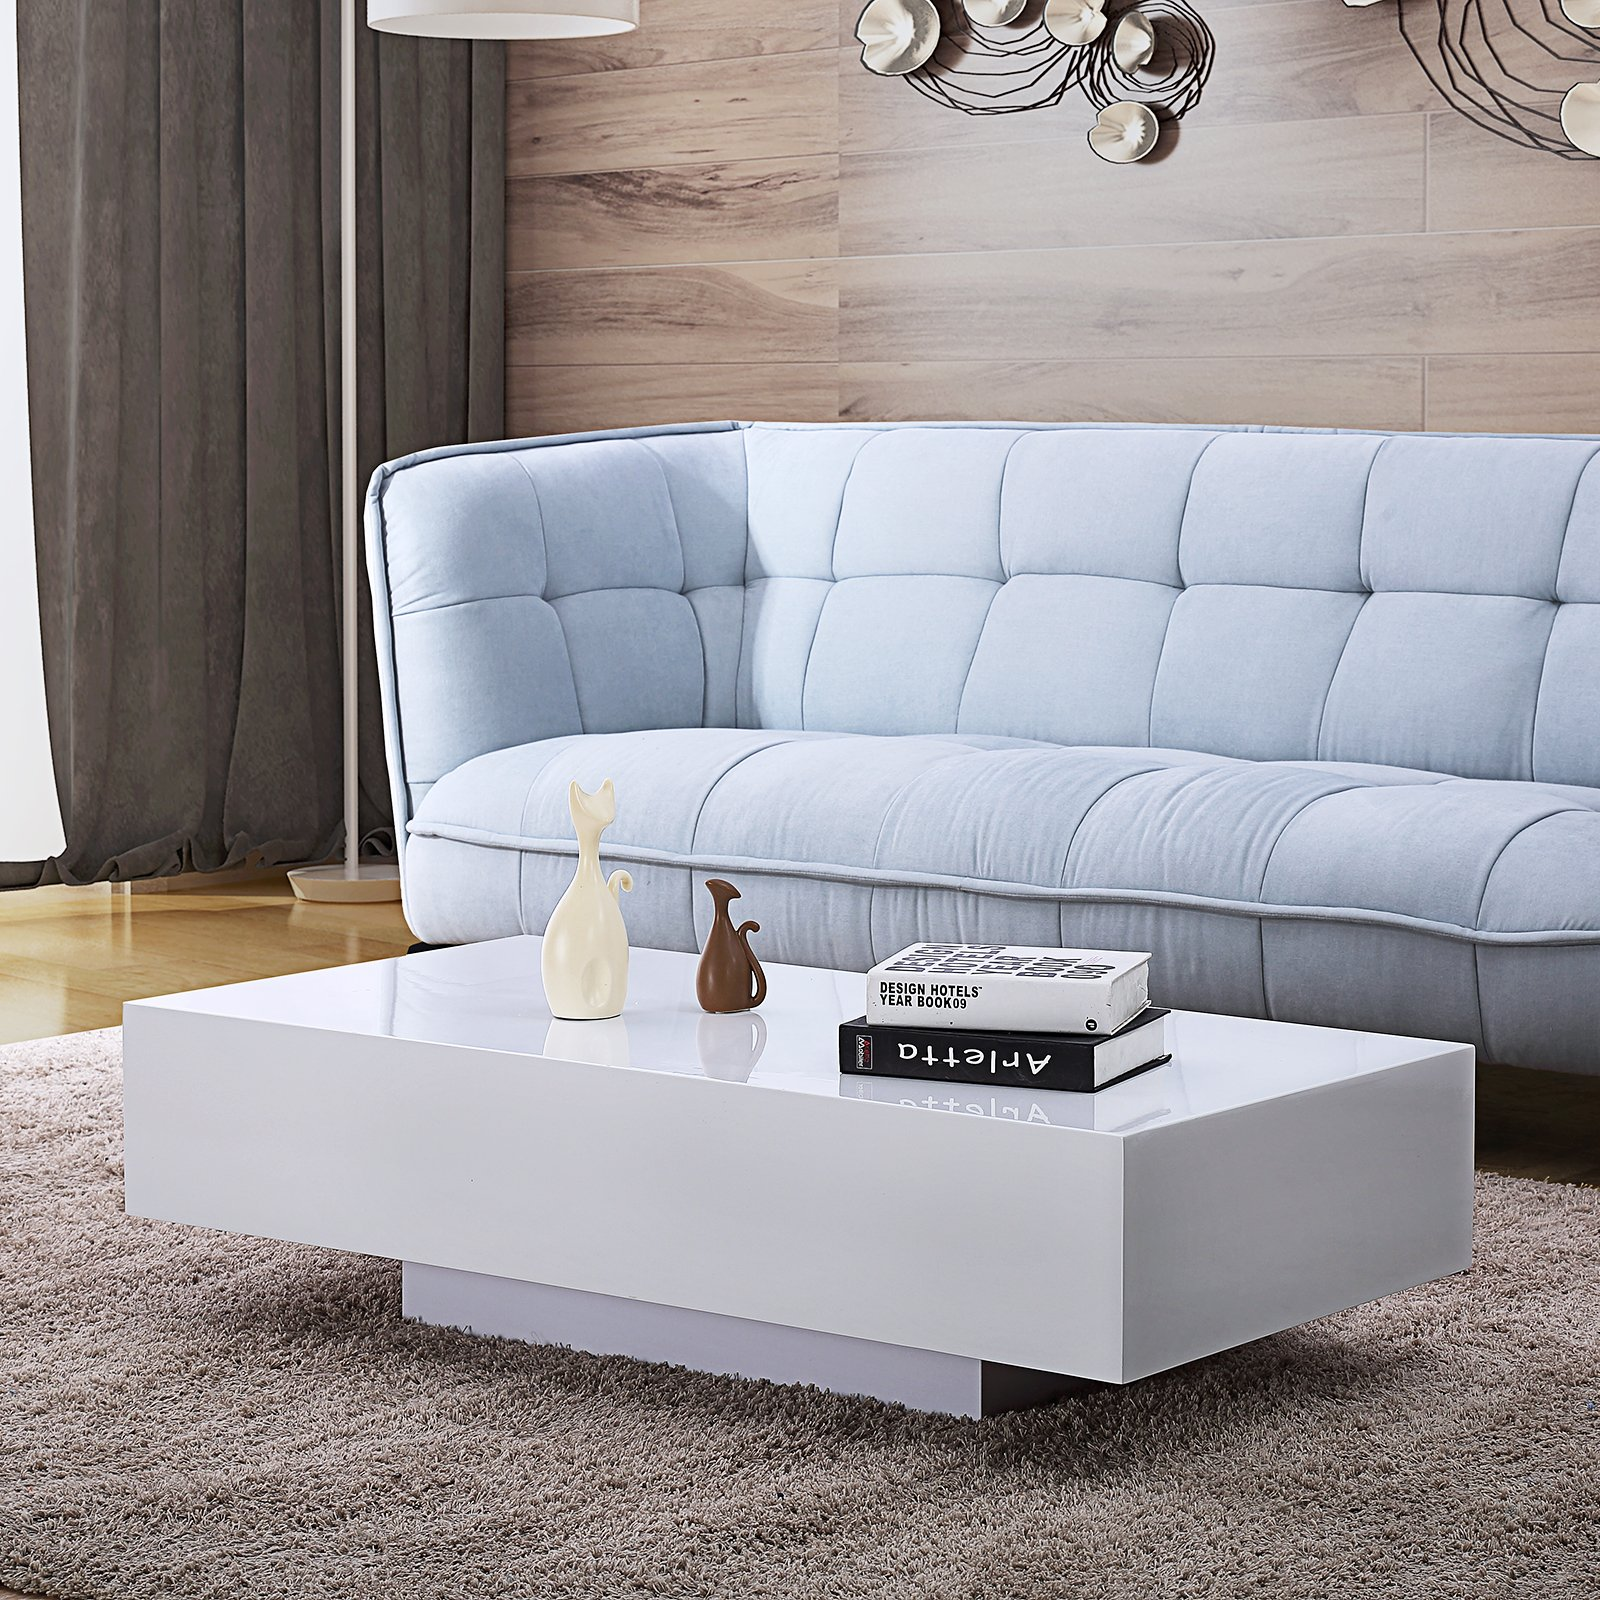 Mecor High Gloss White Rectangle Coffee Table, Modern Side/End/Sofa Table with 1 Layer, Living Room Home Office Furniture by mecor